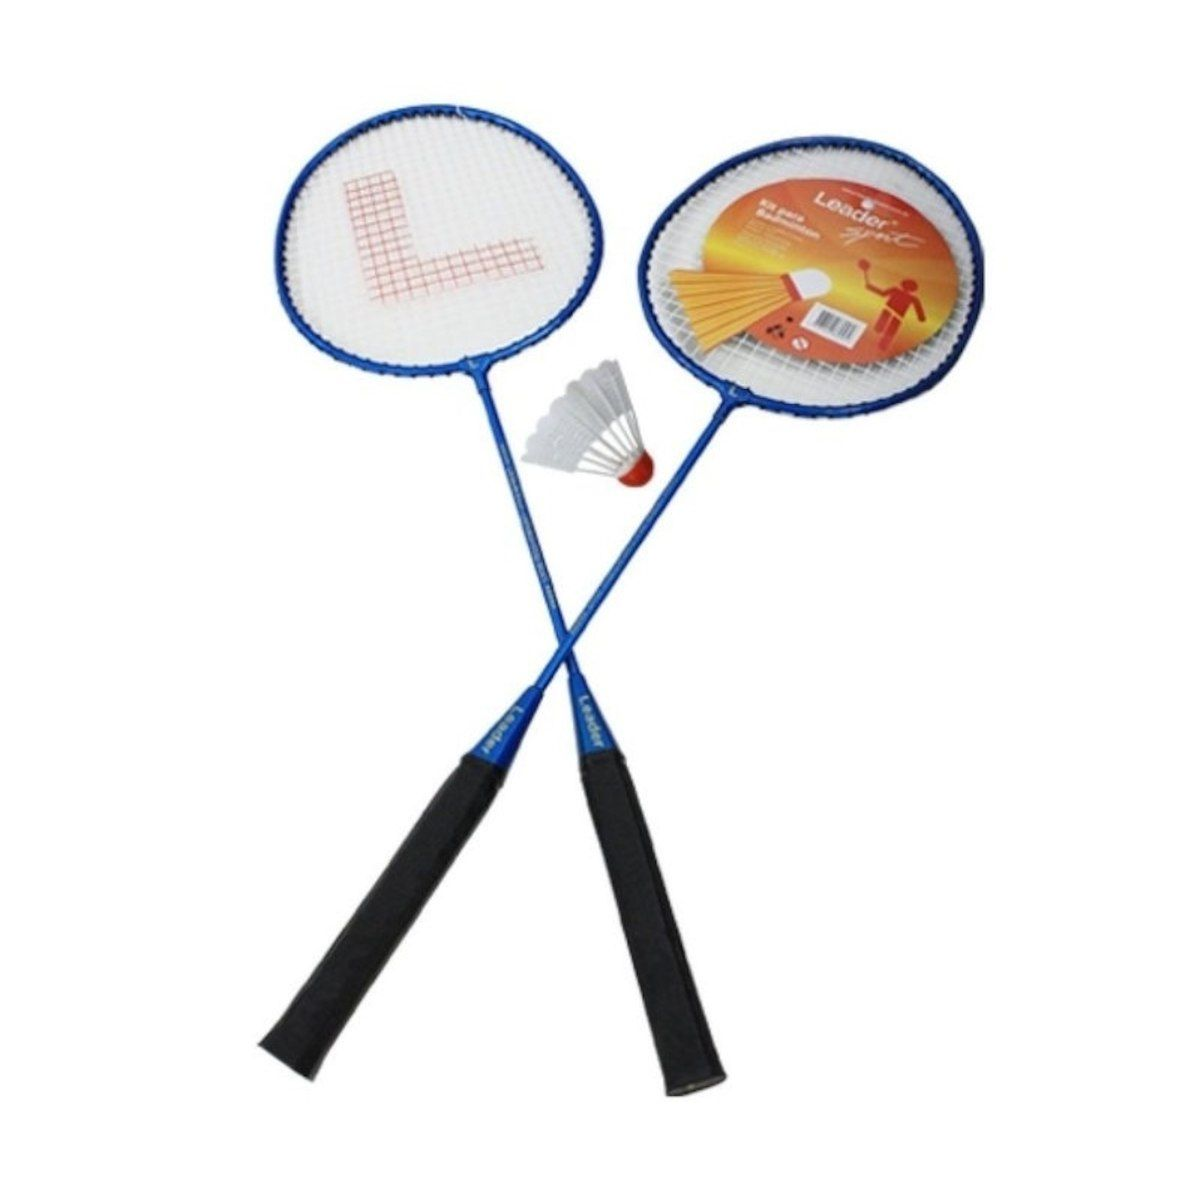 Kit Badminton Leader Sports